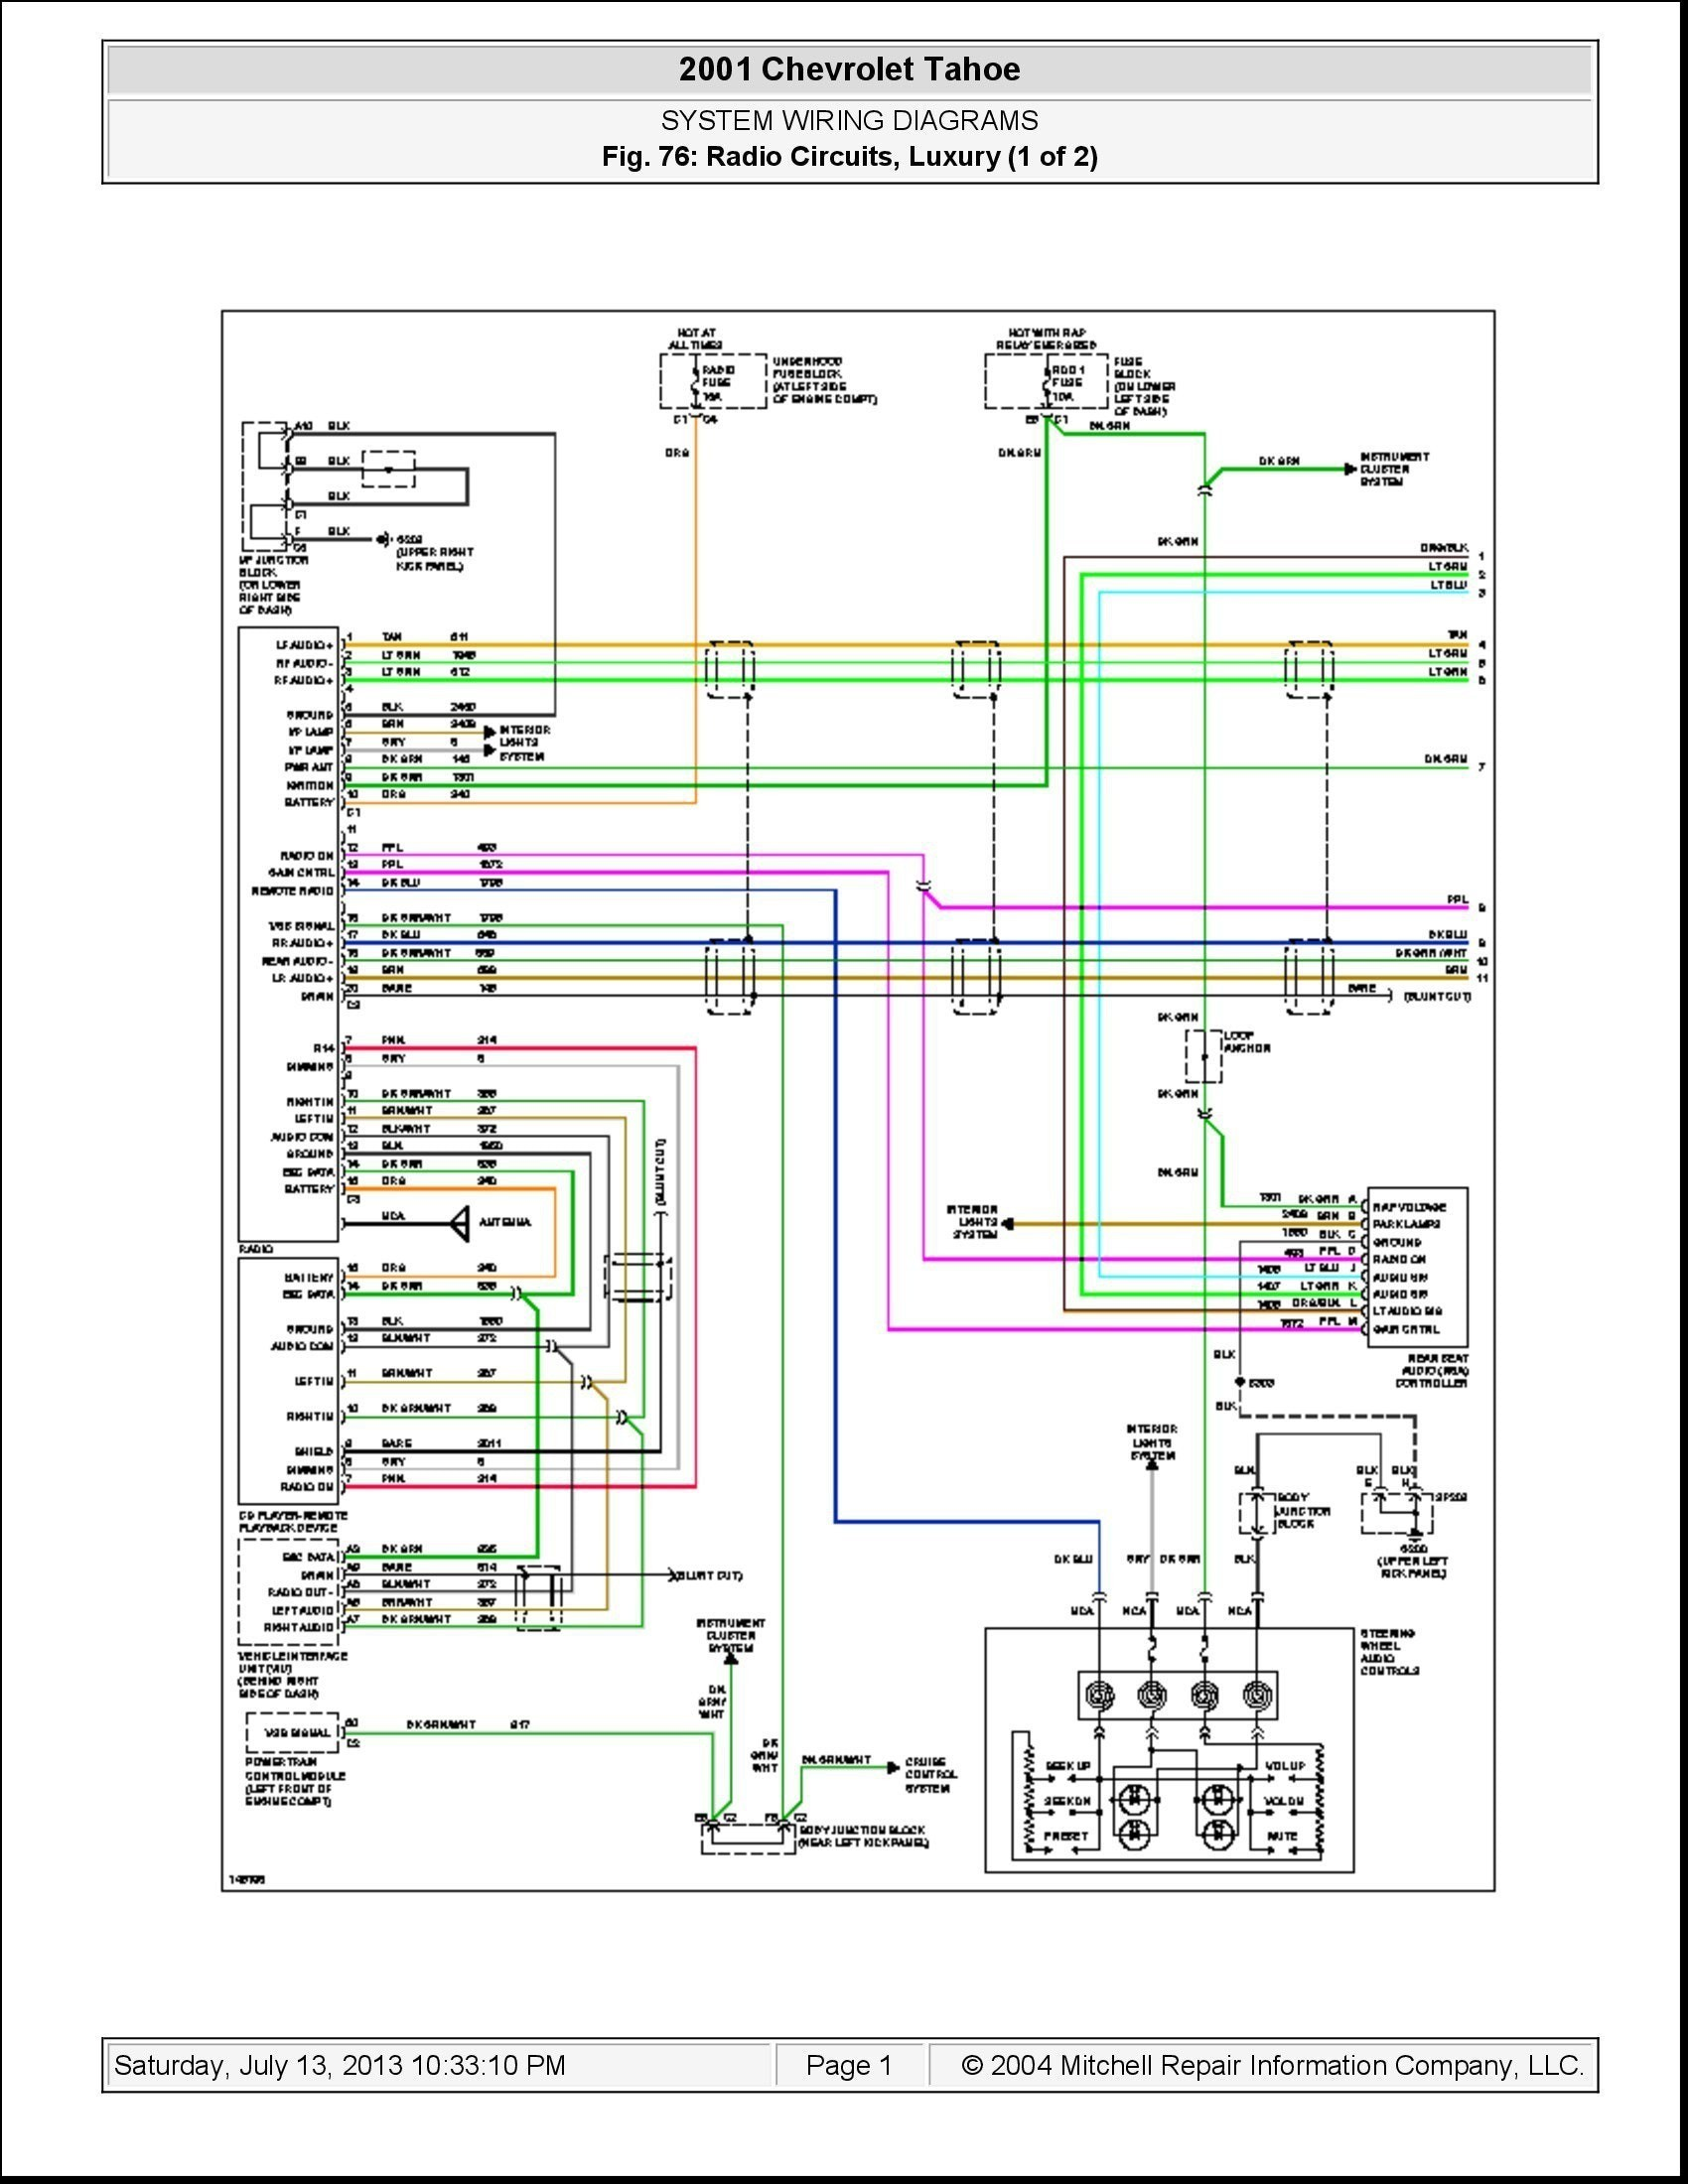 2001 Chevy Tahoe Air Conditioner Diagram Wiring Schematic 2007 Harley Davidson Sportster 883 Wiring Diagram Wiring Diagram Schematics